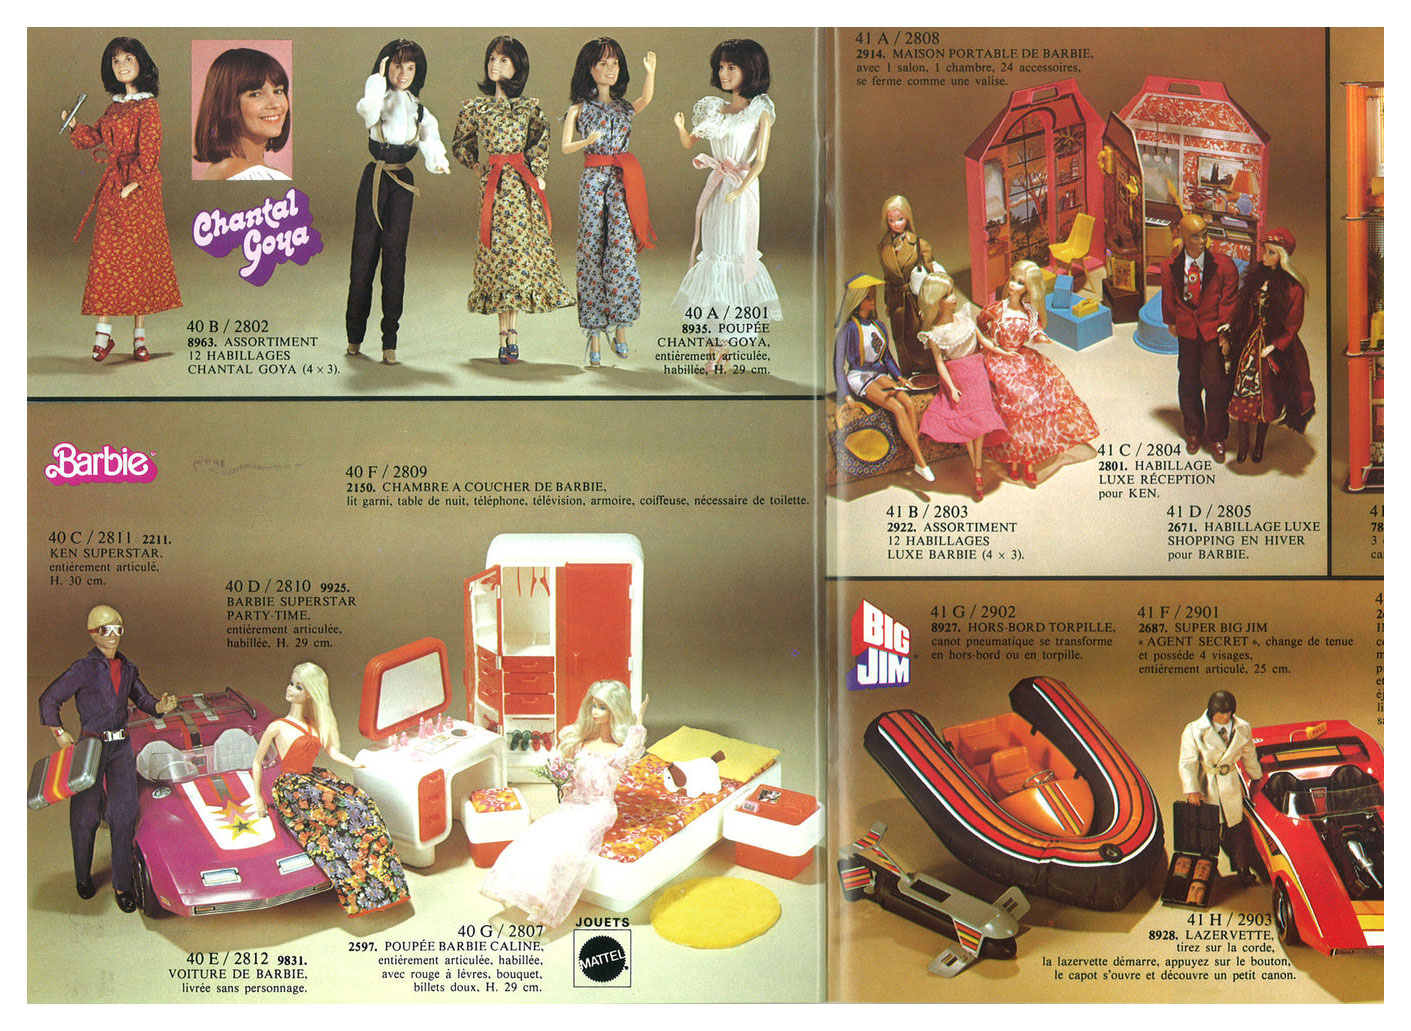 From 1979 French Difrajo (Distributeurs français du jouets) Noel catalogue